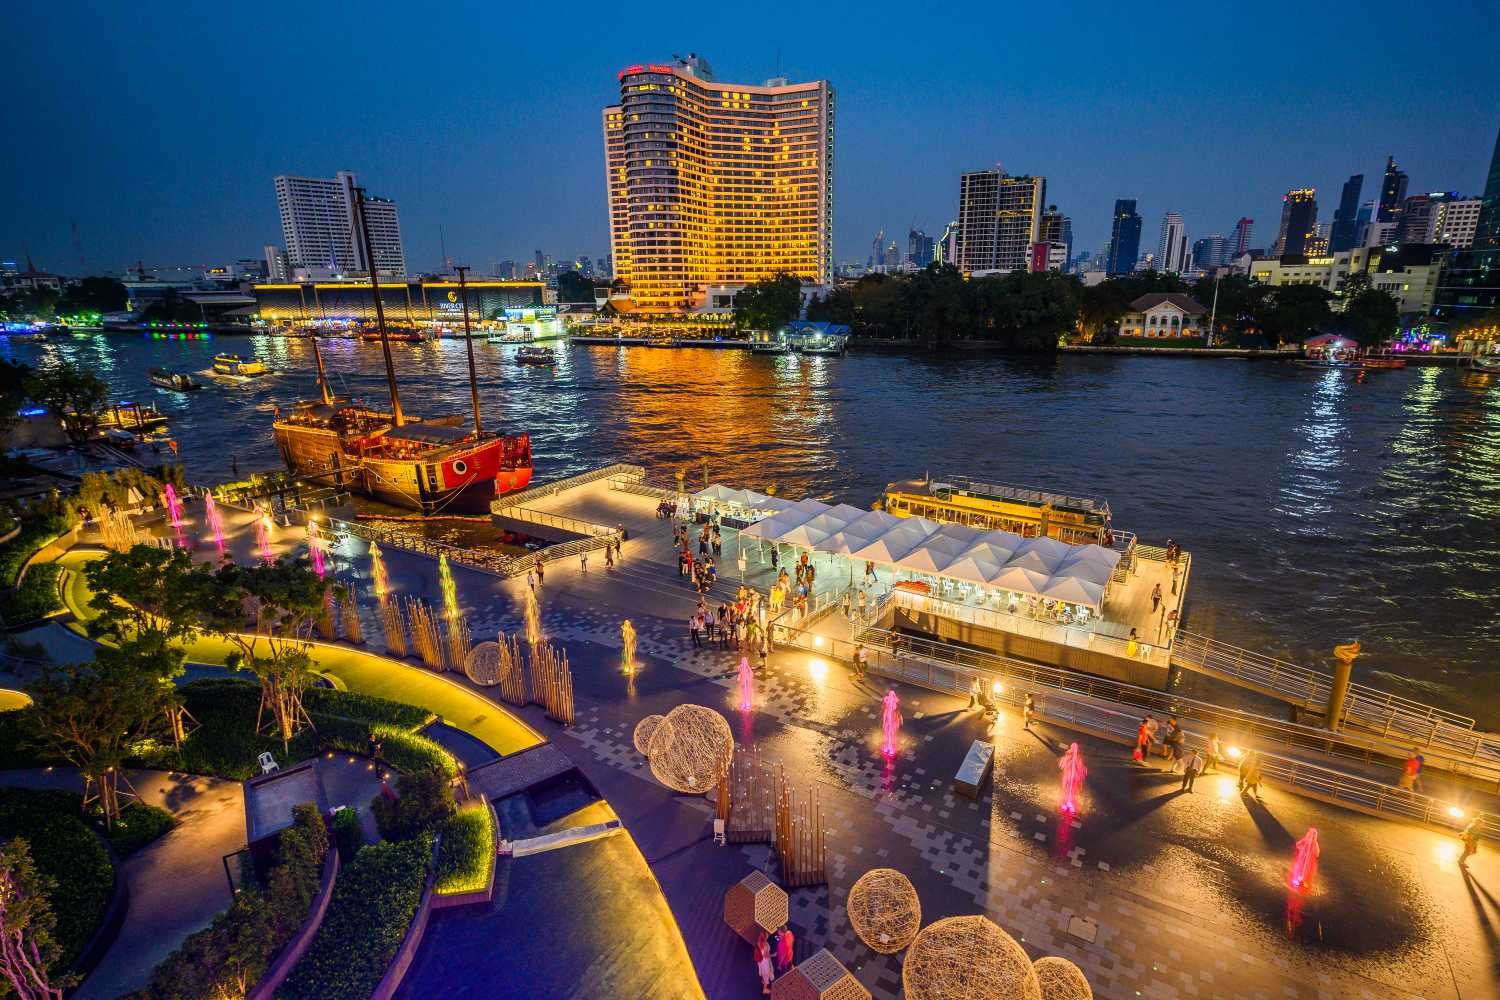 River Park with in the foreground the ICONIC Multimedia Water Features at ICONSIAM in Bangkok.